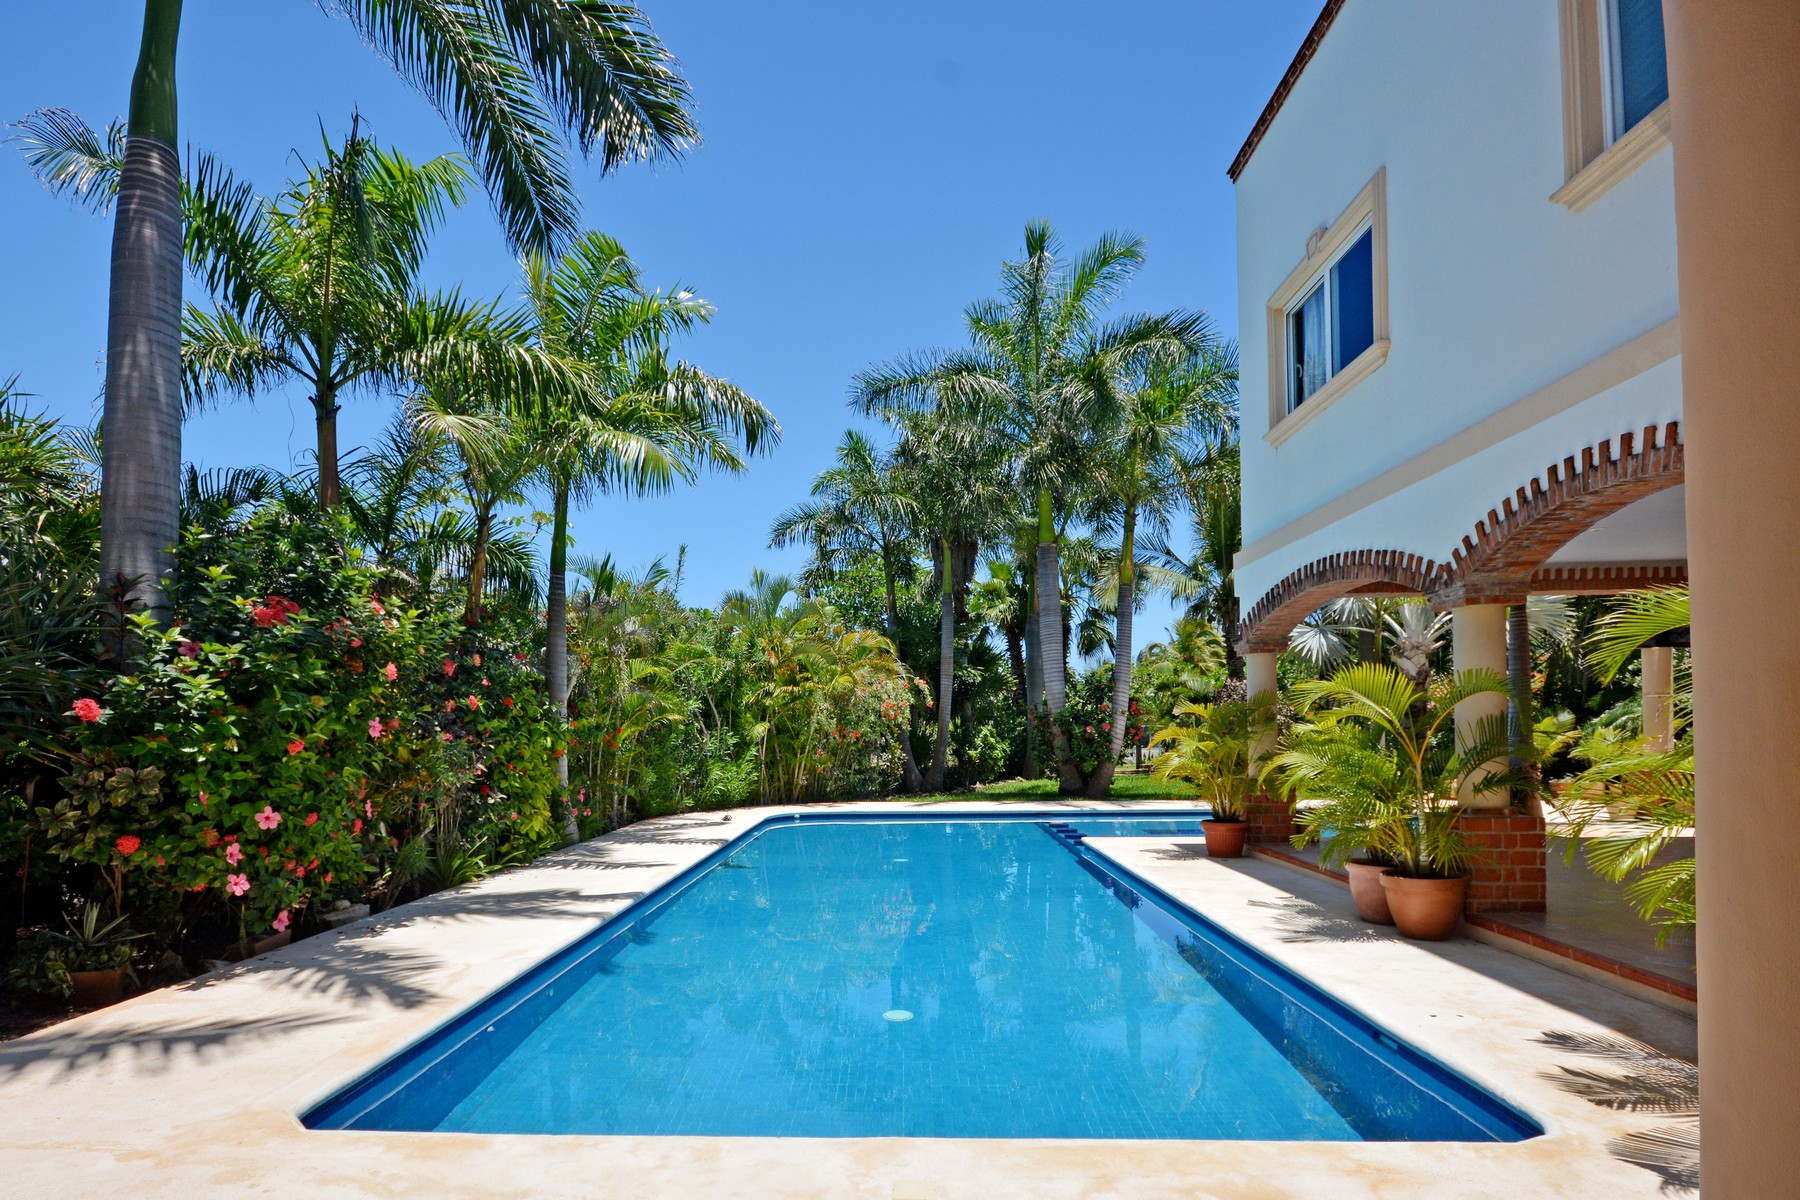 Additional photo for property listing at GRAND HOME IN A BEACHFRONT GATED COMMUNITY Grand Home in a beachfront gated community Playa Paraiso Lot 49 Playa Del Carmen, Quintana Roo 77710 Mexico